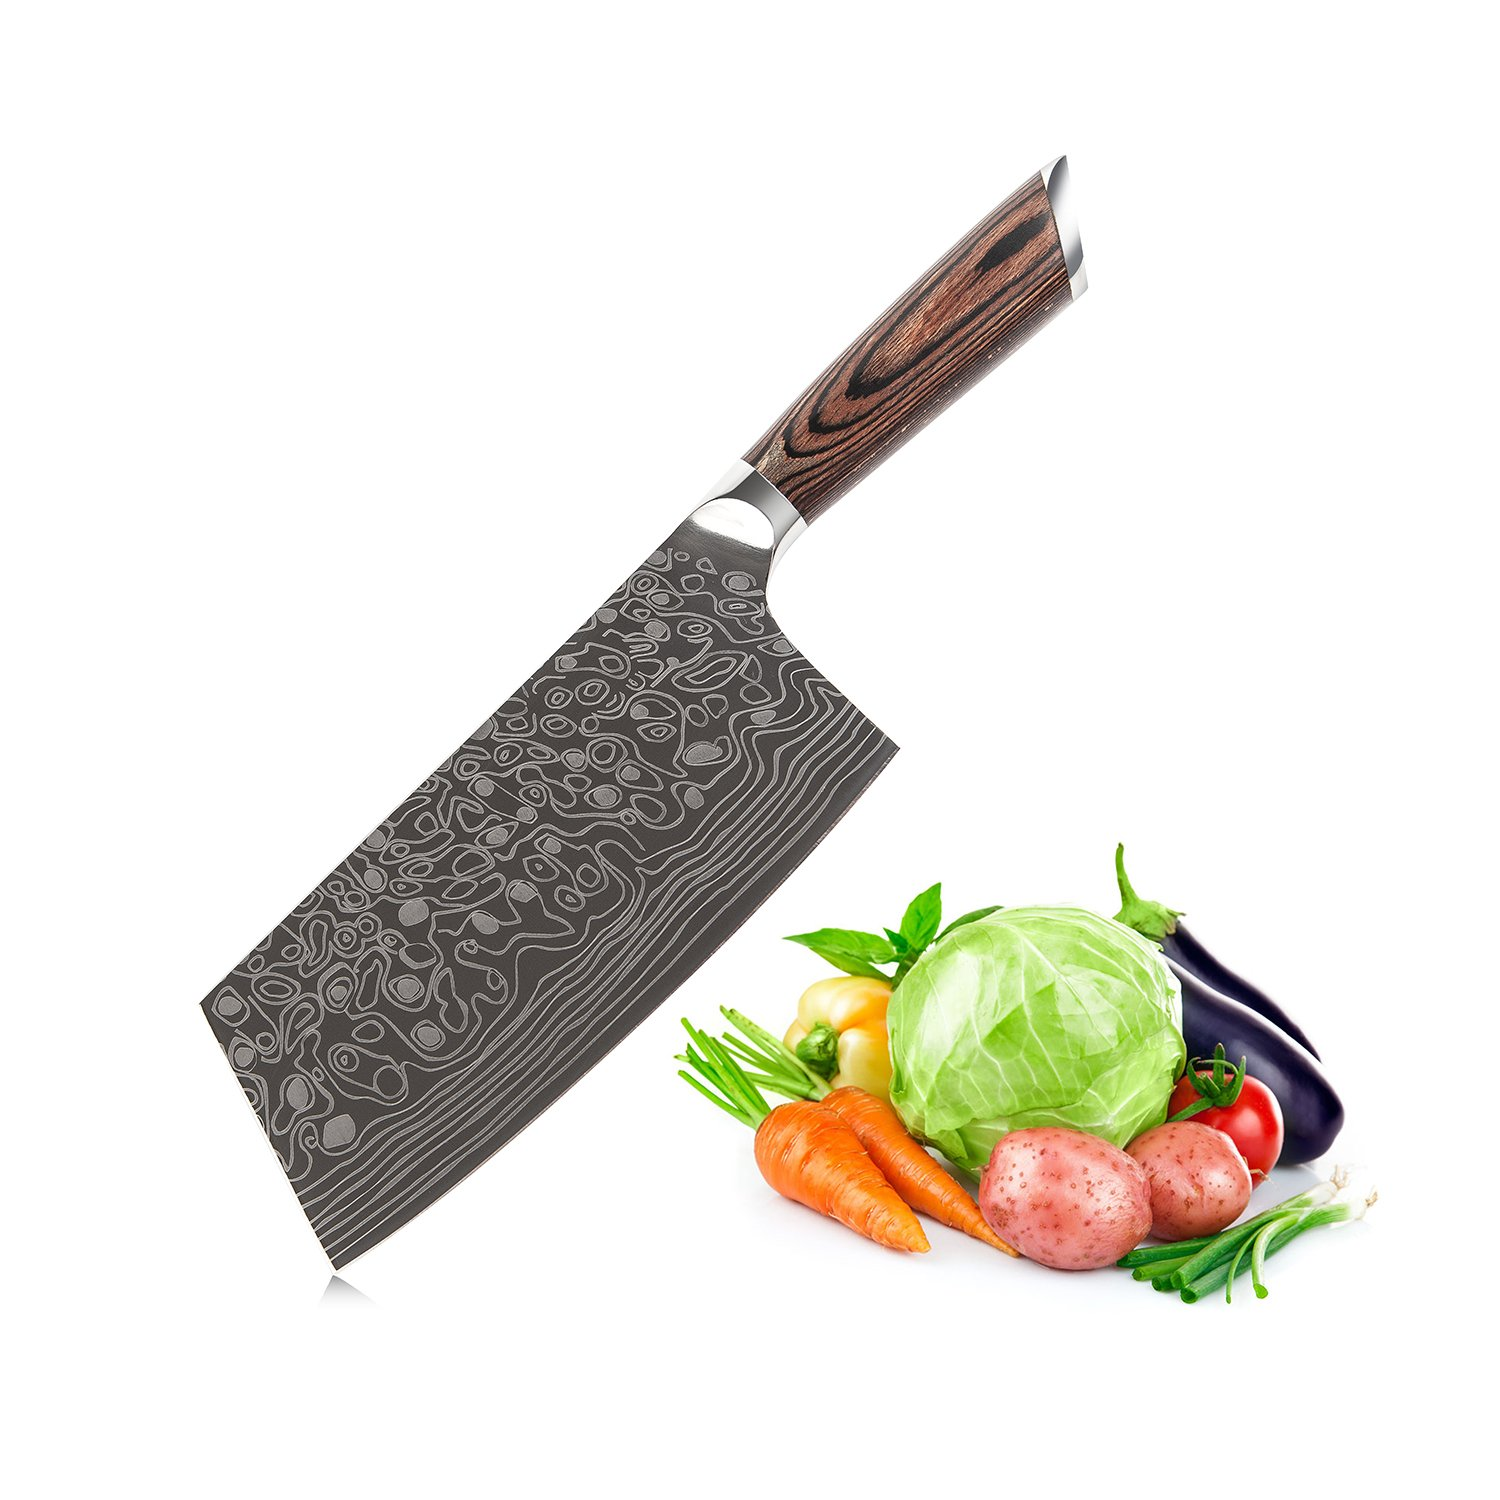 EKUER 7-Inch Chinese Chef's Meat Chopper Cleaver Butcher Vegetable Knife for Home Kitchen or Restaurant,German High Carbon Stainless Steel